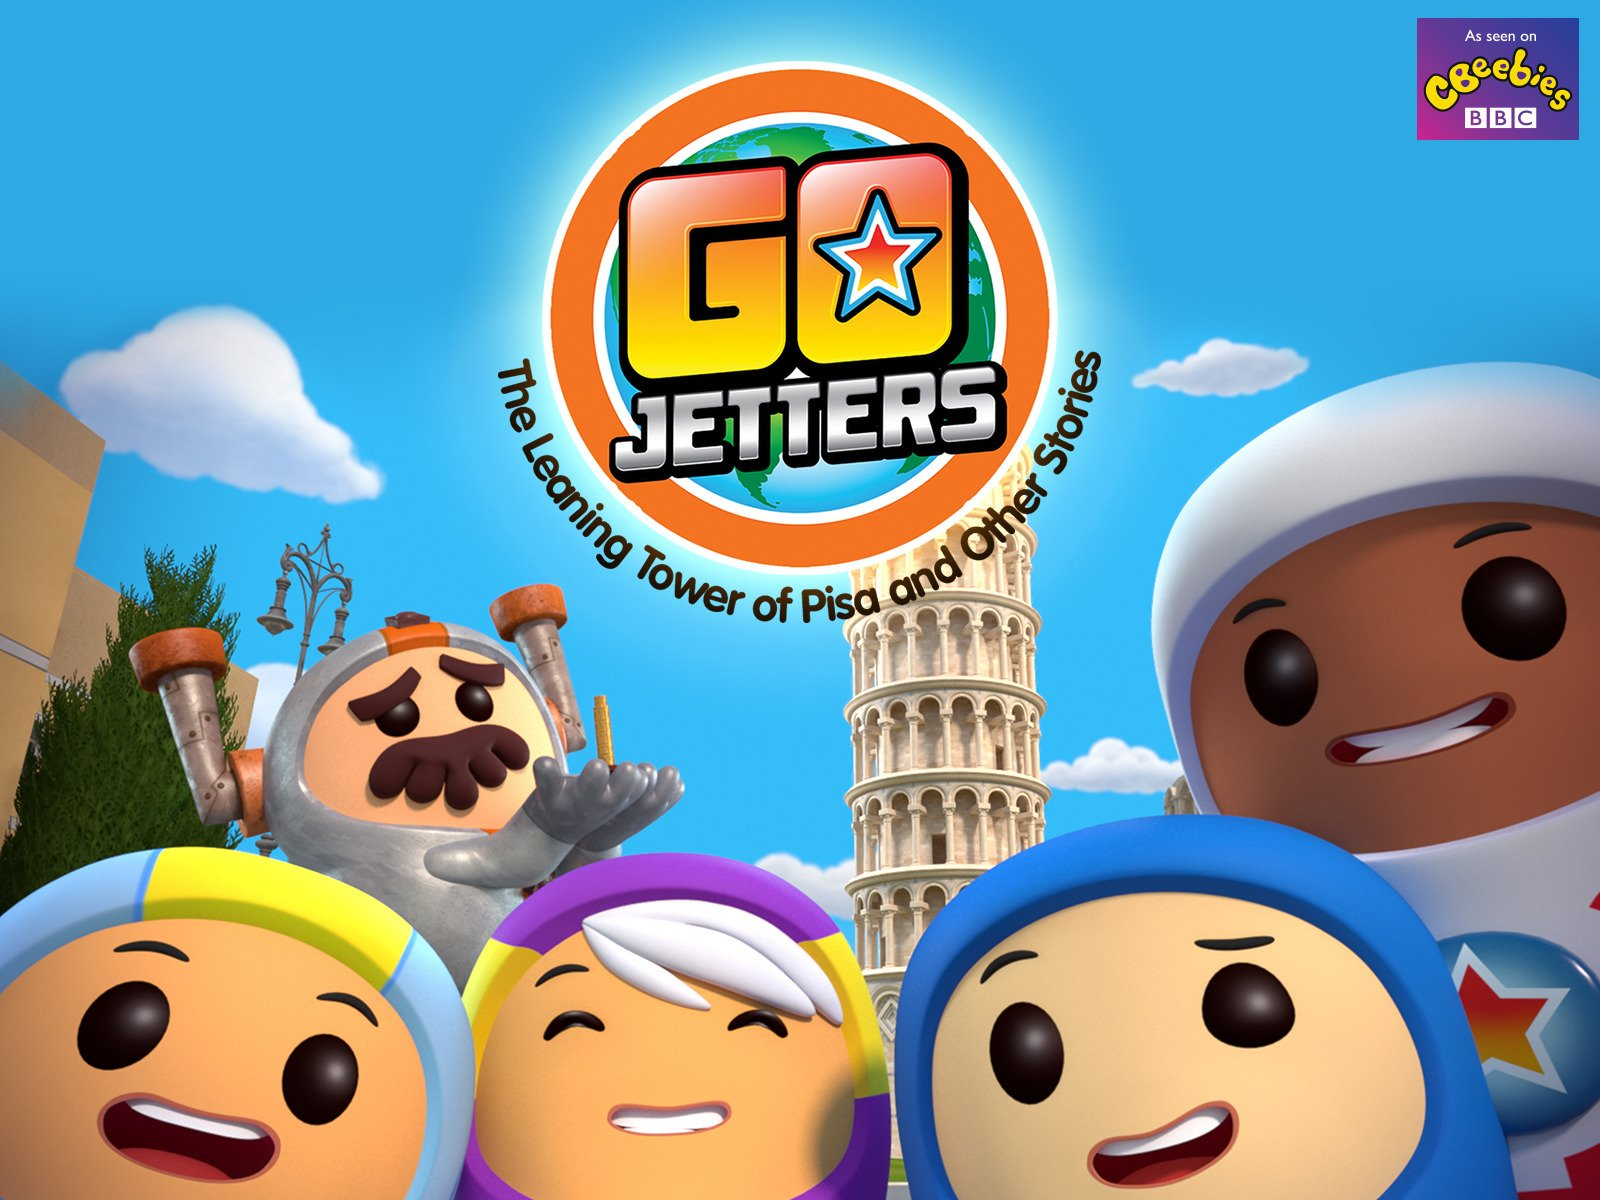 Go Jetters, The Leaning Tower of Pisa and Other Stories - Season 102